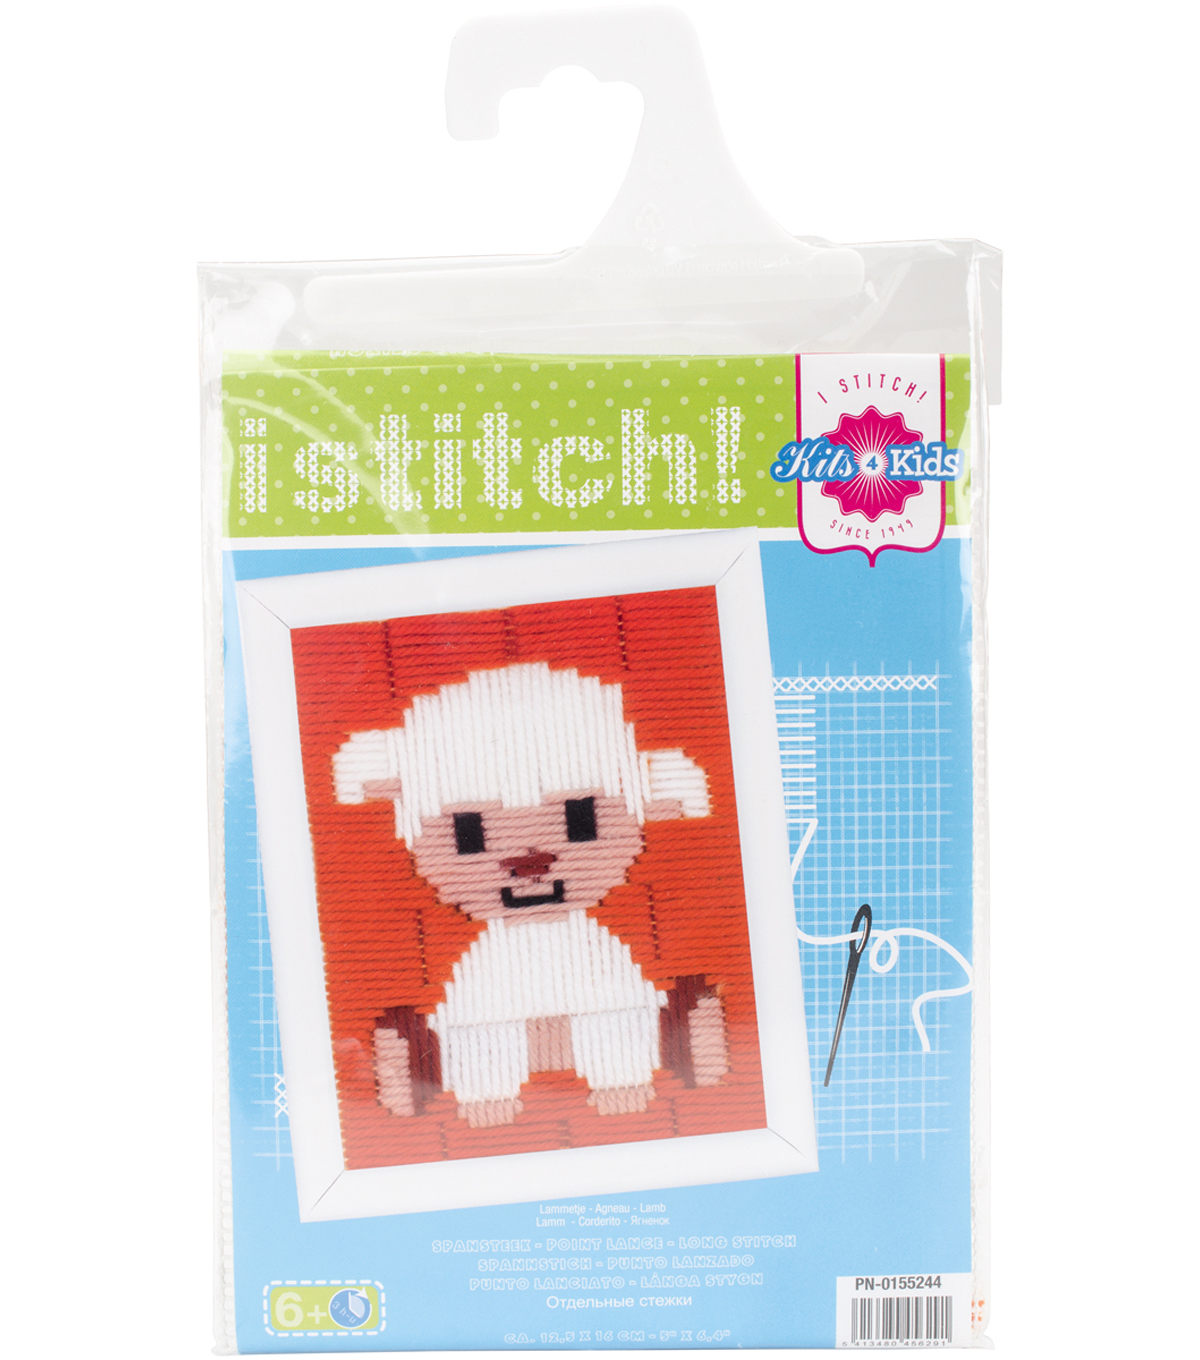 Vervaco iStitch Kits 4 Kids 5\u0027\u0027x6.4\u0027\u0027 Longstitch Kit-Lamb